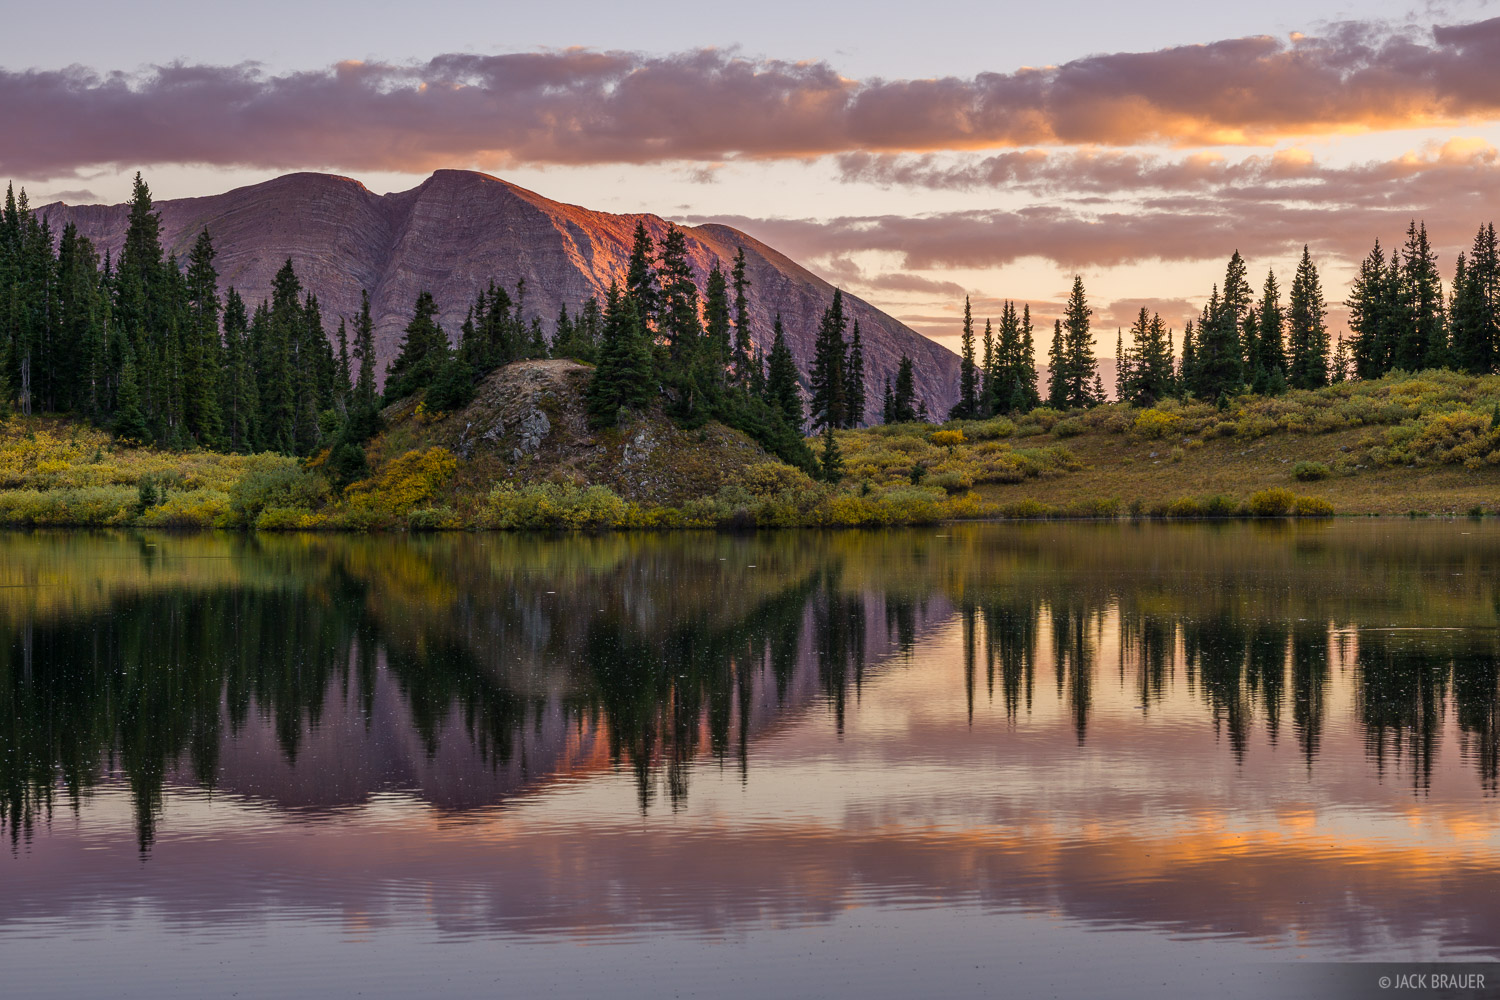 Sunset reflection in Copper Lake.